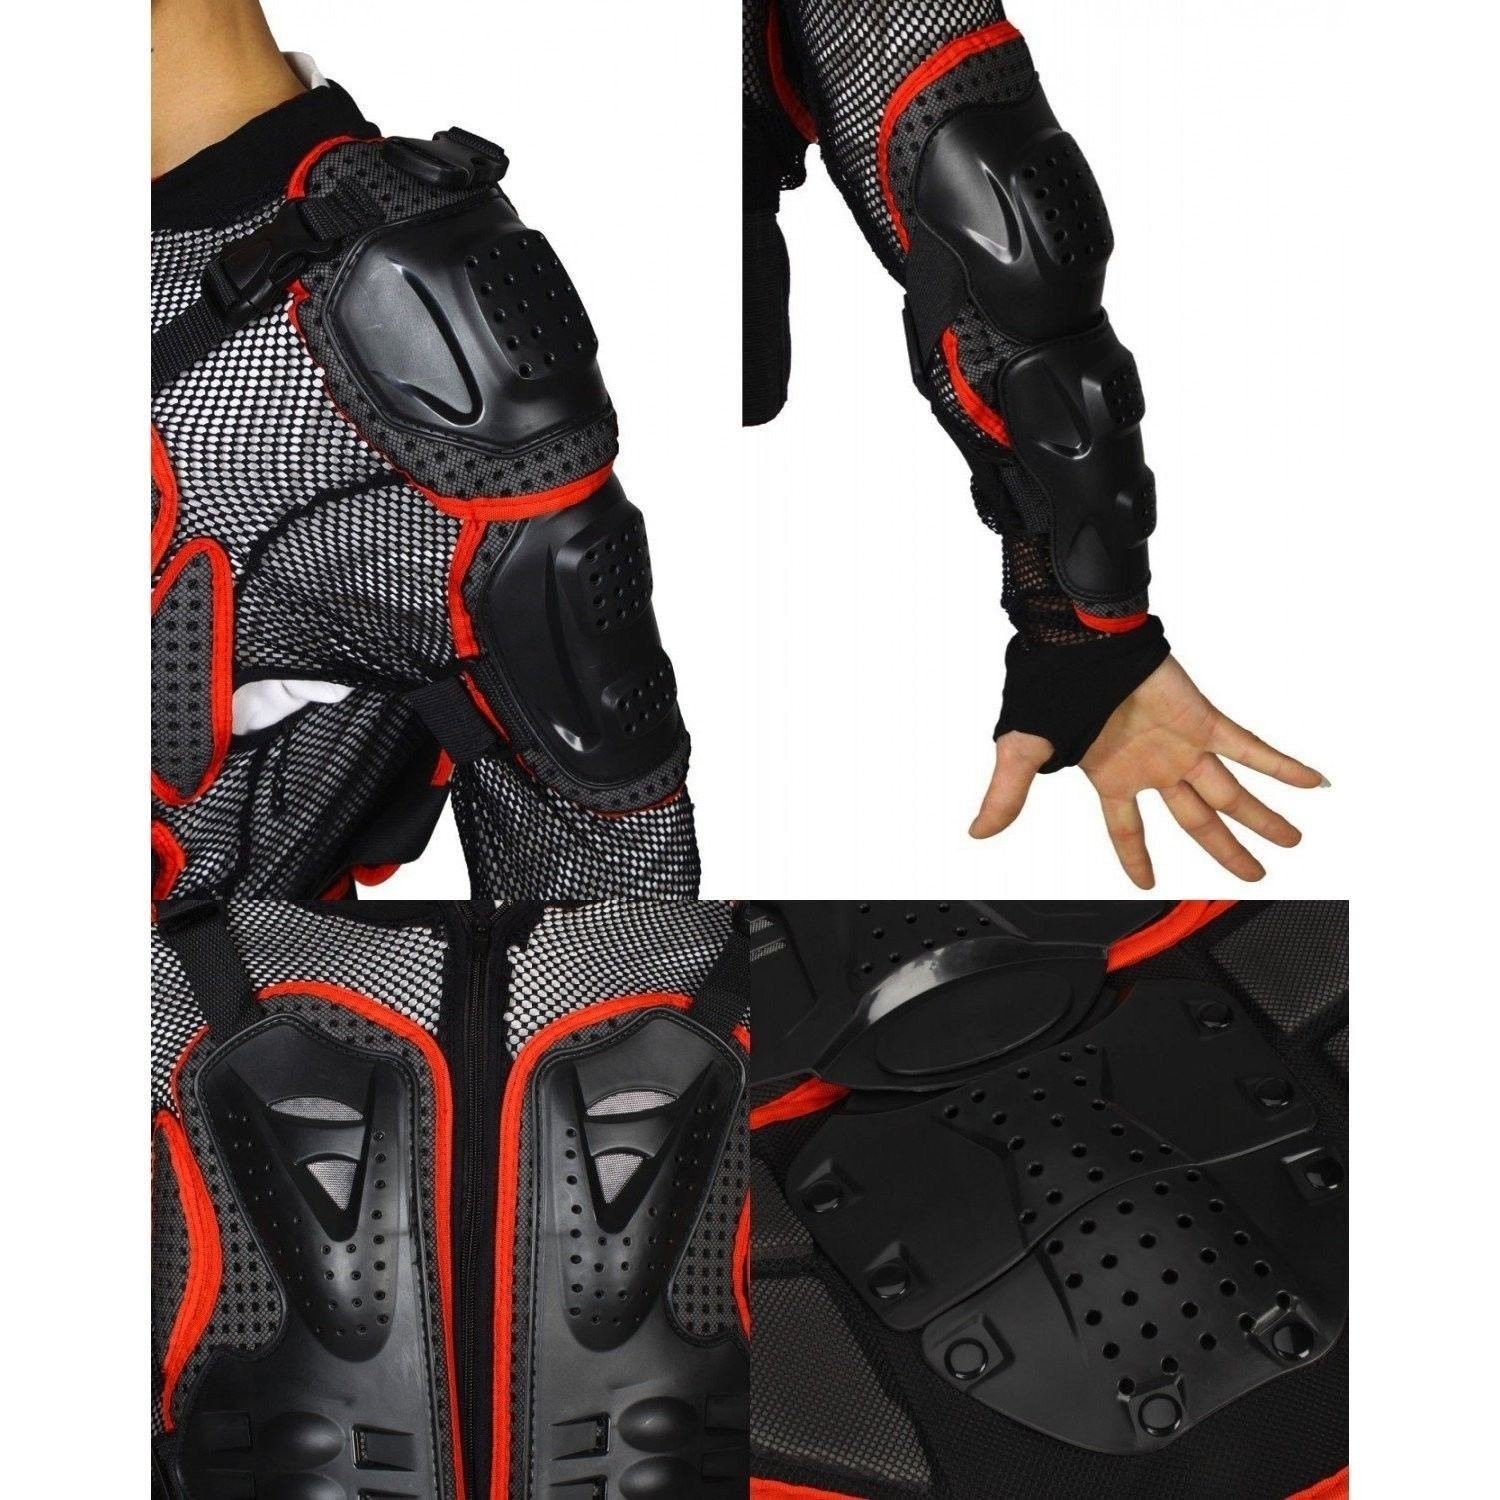 Size XXXL red Motorcycle Parts Full Body Protective Jacket Spine Chest Gear Armor Off Road Protector Motorcross Racing Clothing Fit For 1999 2000 2001 2002 2003 2004 2005 2006 Suzuki HAYABUSA/GSXR1300 2007